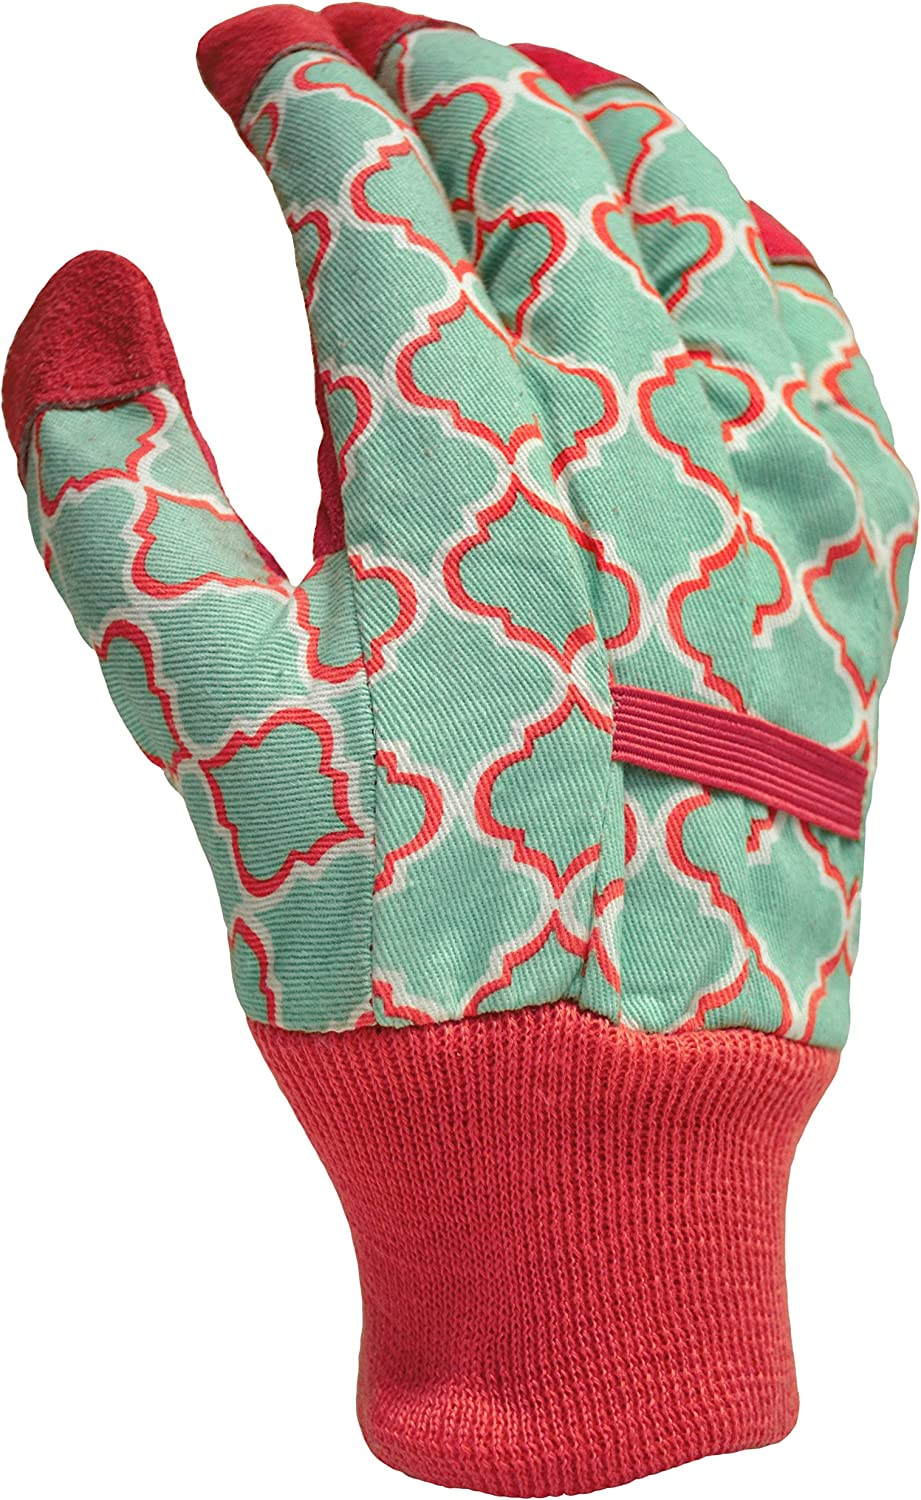 DIGZ Leather Palm Garden Gloves with Knit Wrist, Small